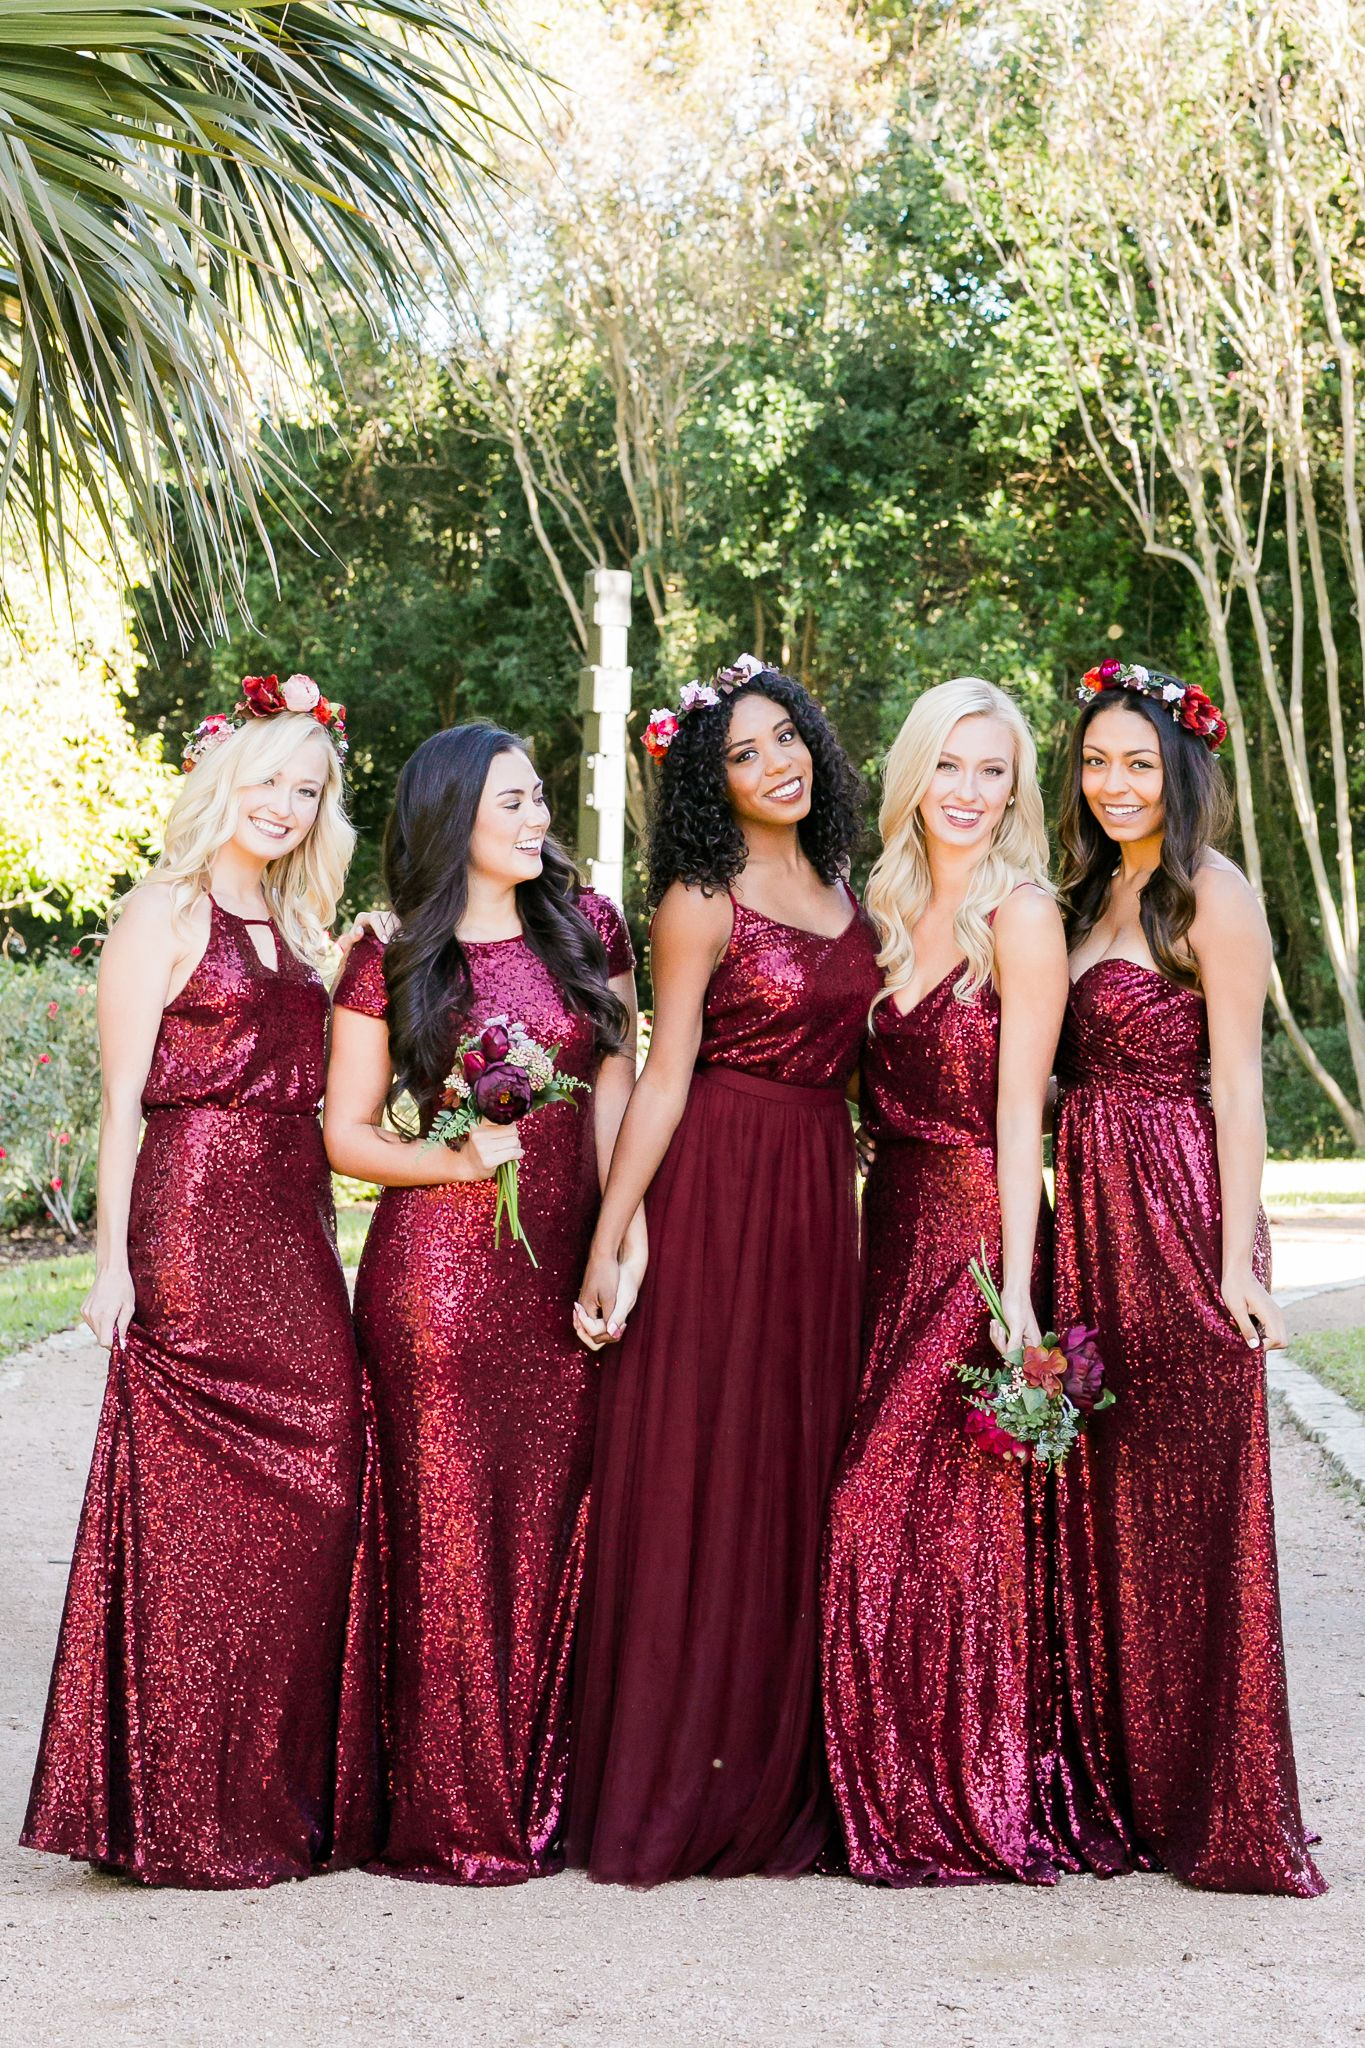 Mix And Match Revelry Bridesmaid Dresses And Separates Revelry Has A Wide Selection Of Uniqu Red Bridesmaid Dresses Unique Bridesmaid Dresses Sequin Bridesmaid